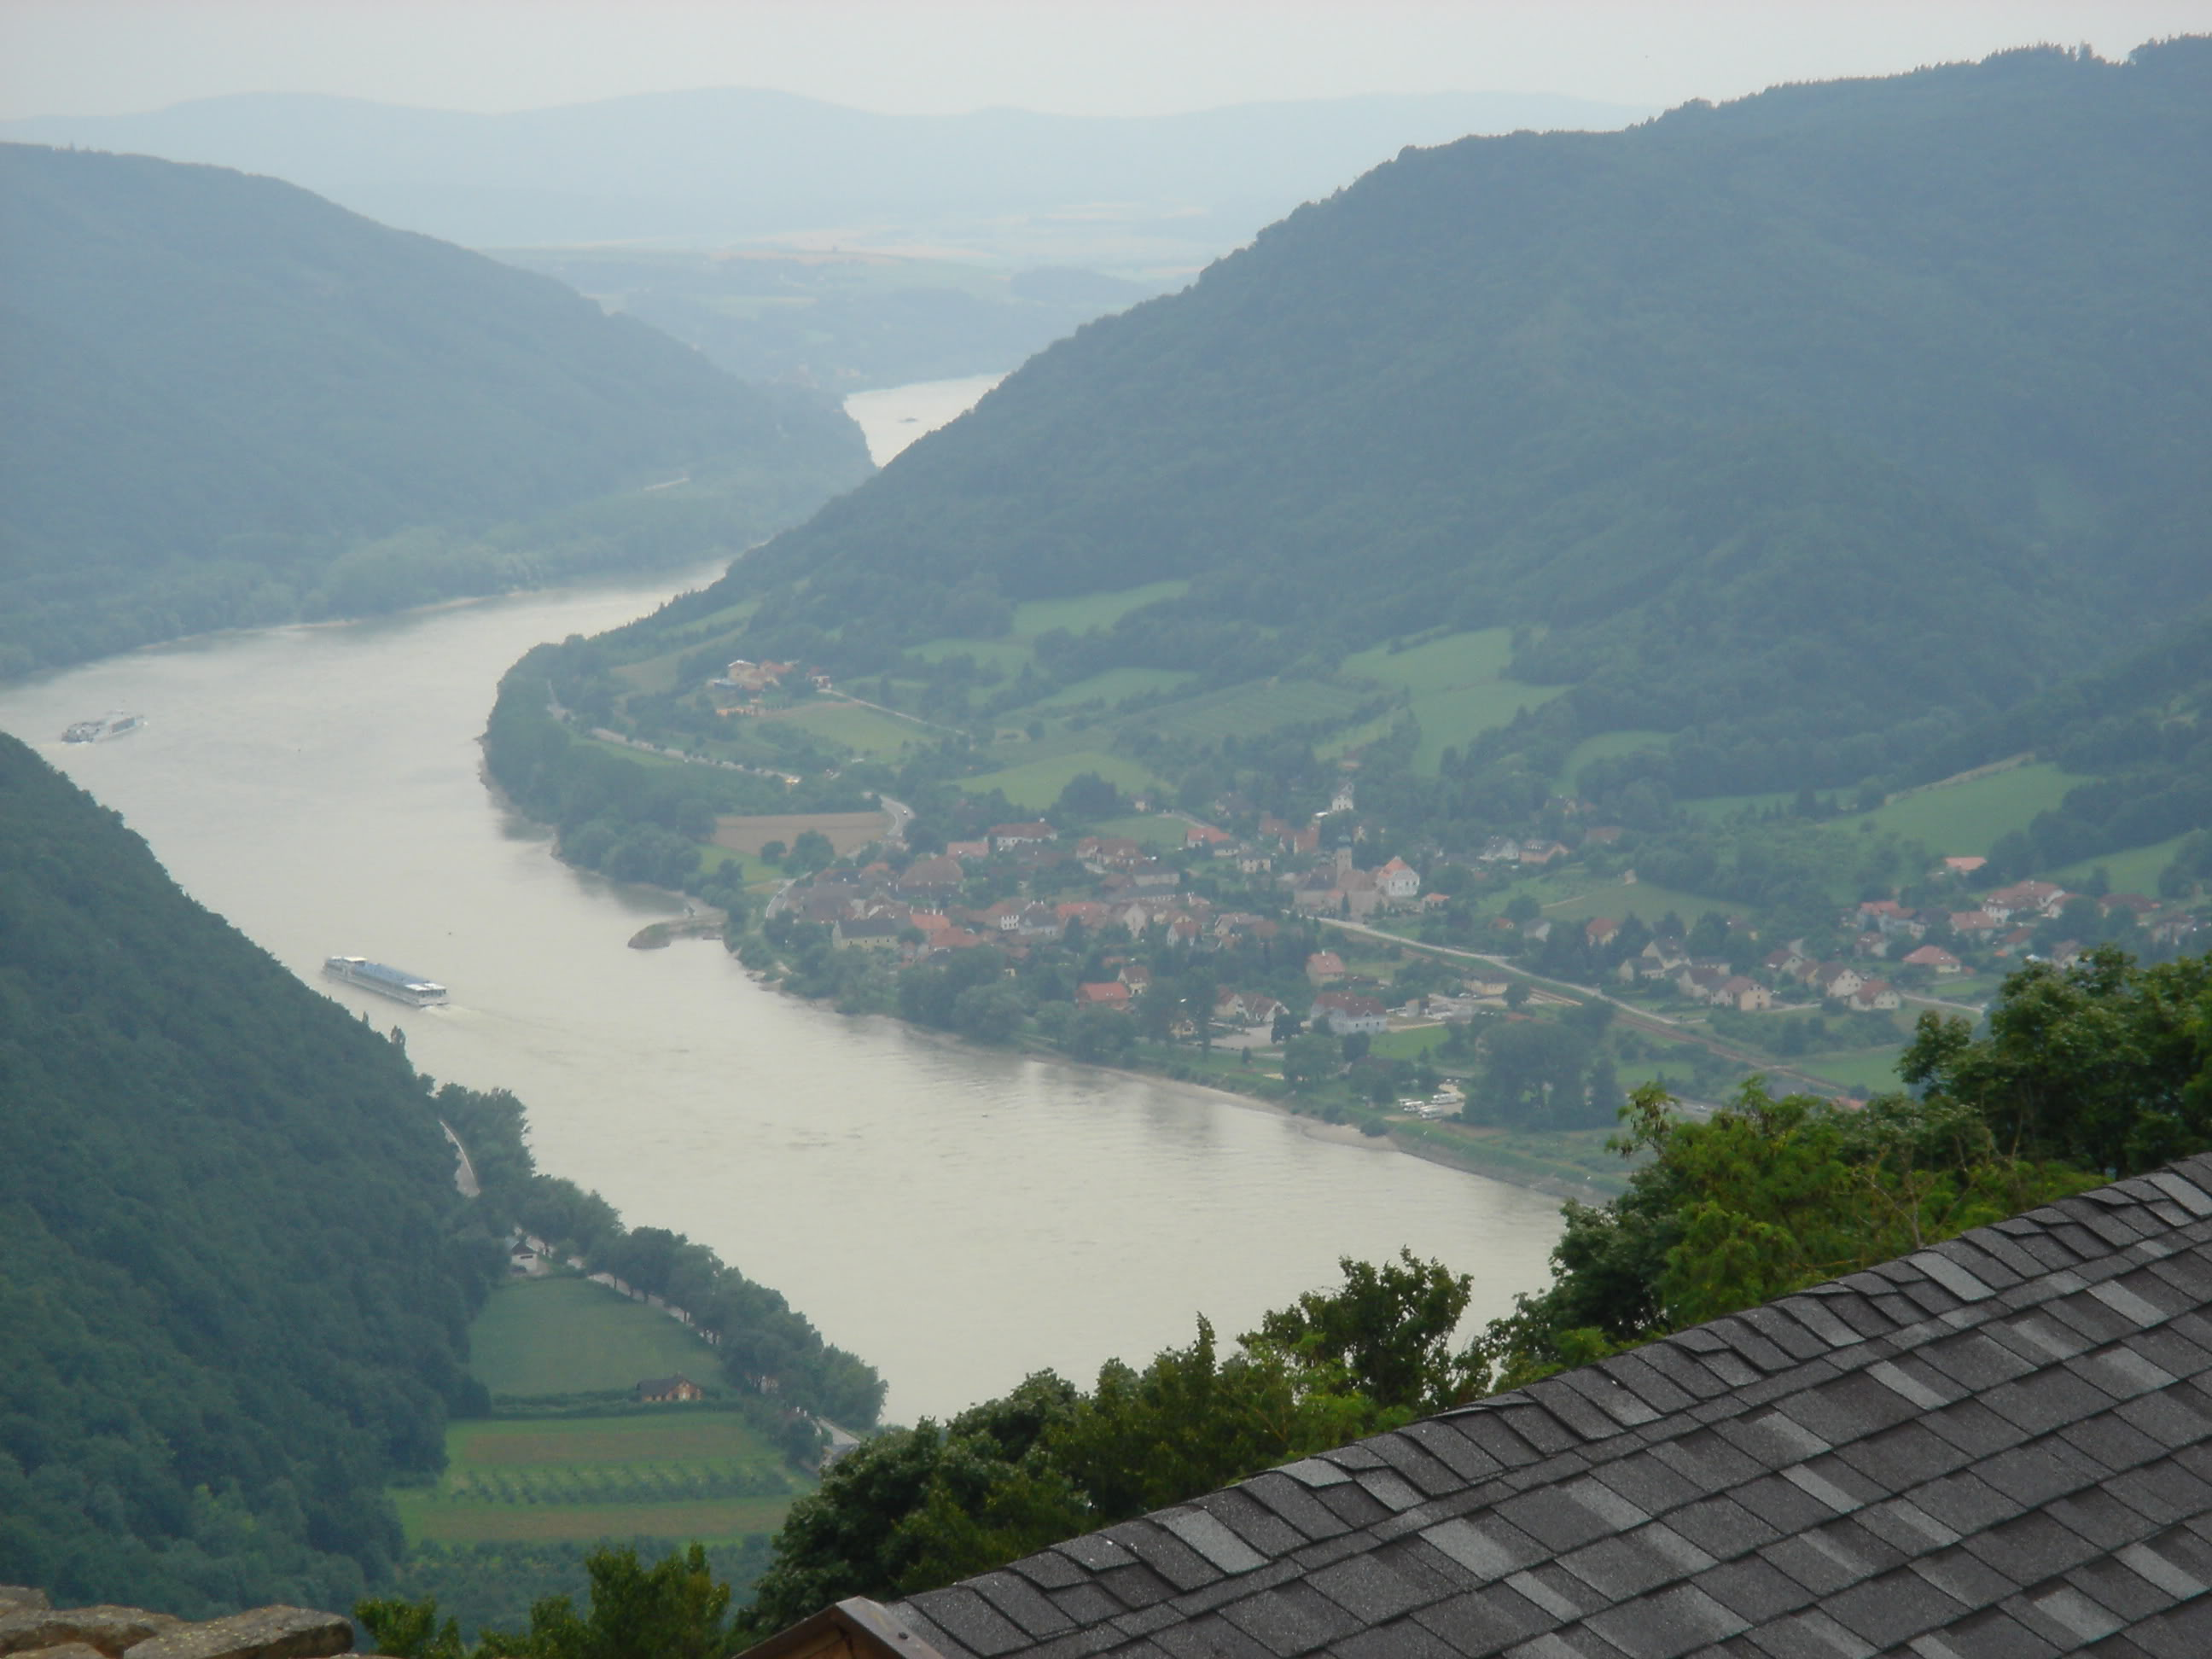 The Danube Pictures, Images and Photos